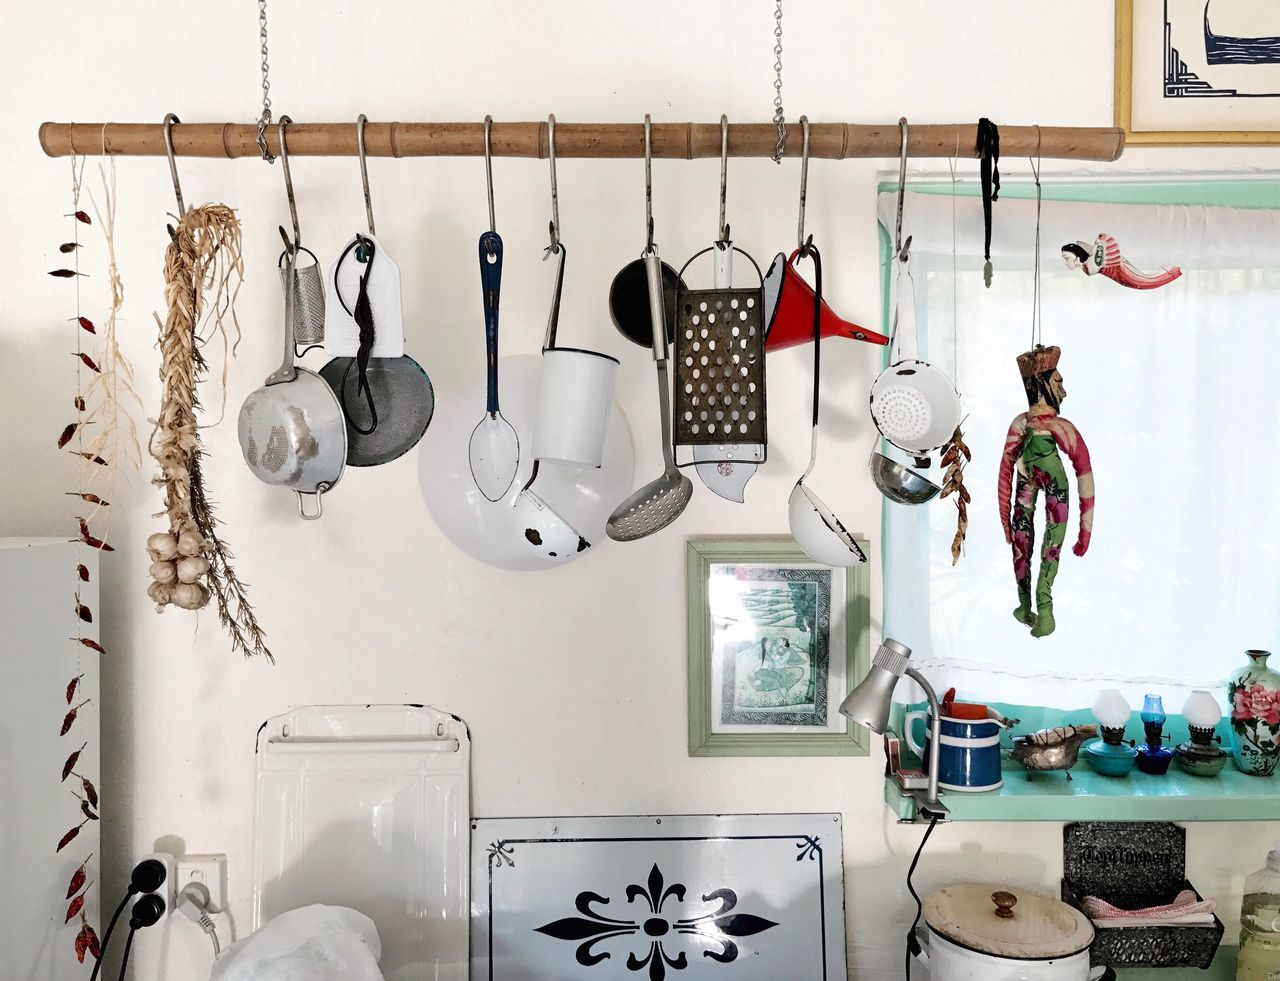 Hanging Indoors  Domestic Kitchen Large Group Of Objects Coathanger Kitchen No People Domestic Room Neat Variation Day Art Is Everywhere